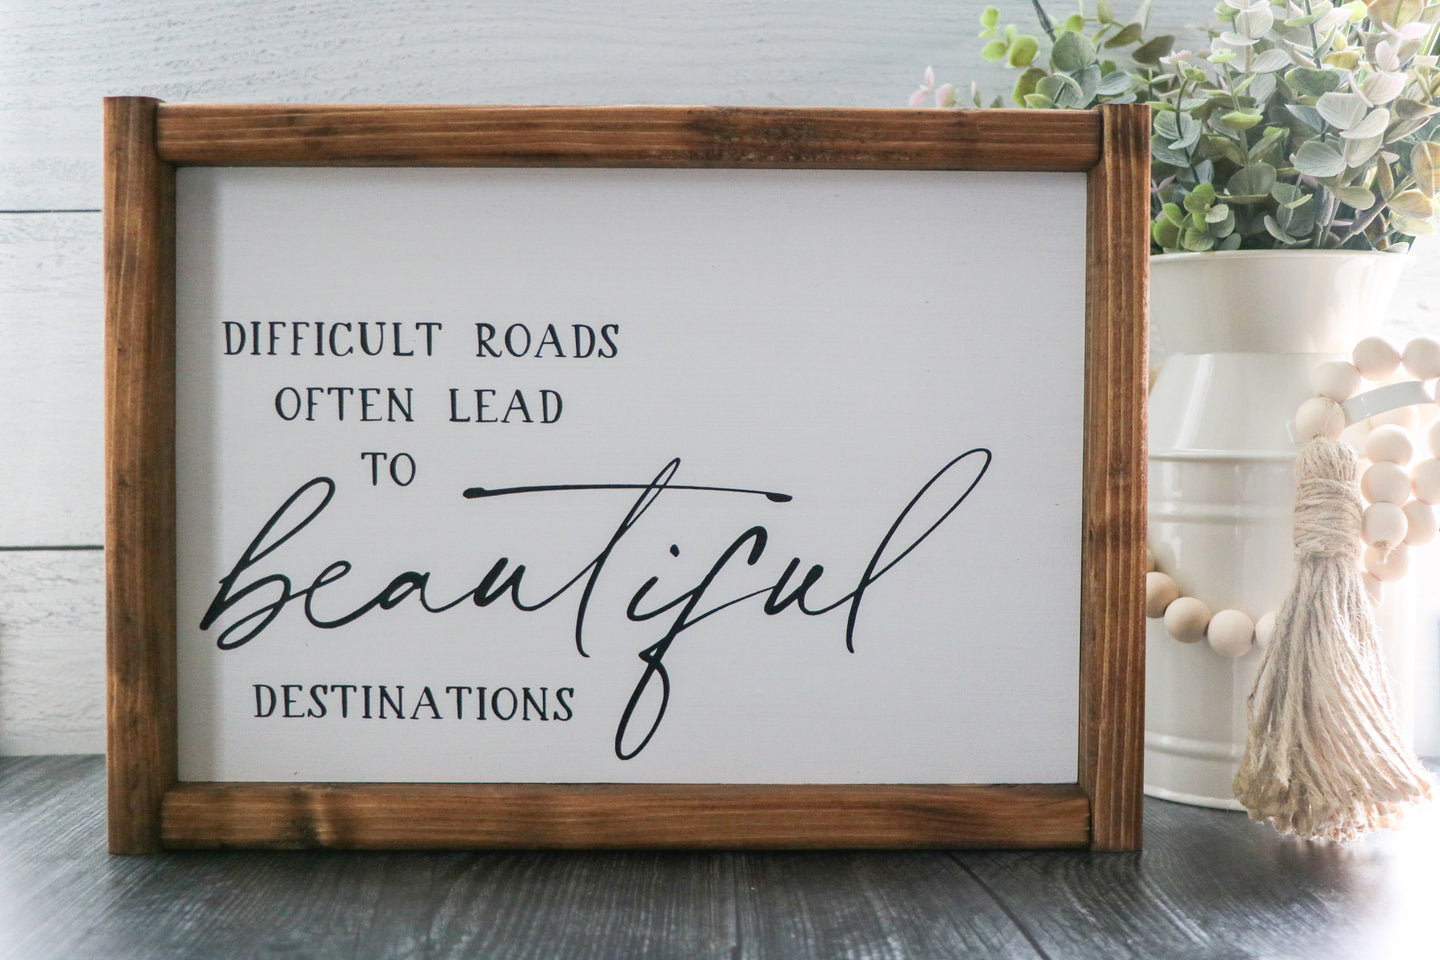 Difficult Roads Often Lead To Beautiful Destinations | Framed Wood Sign